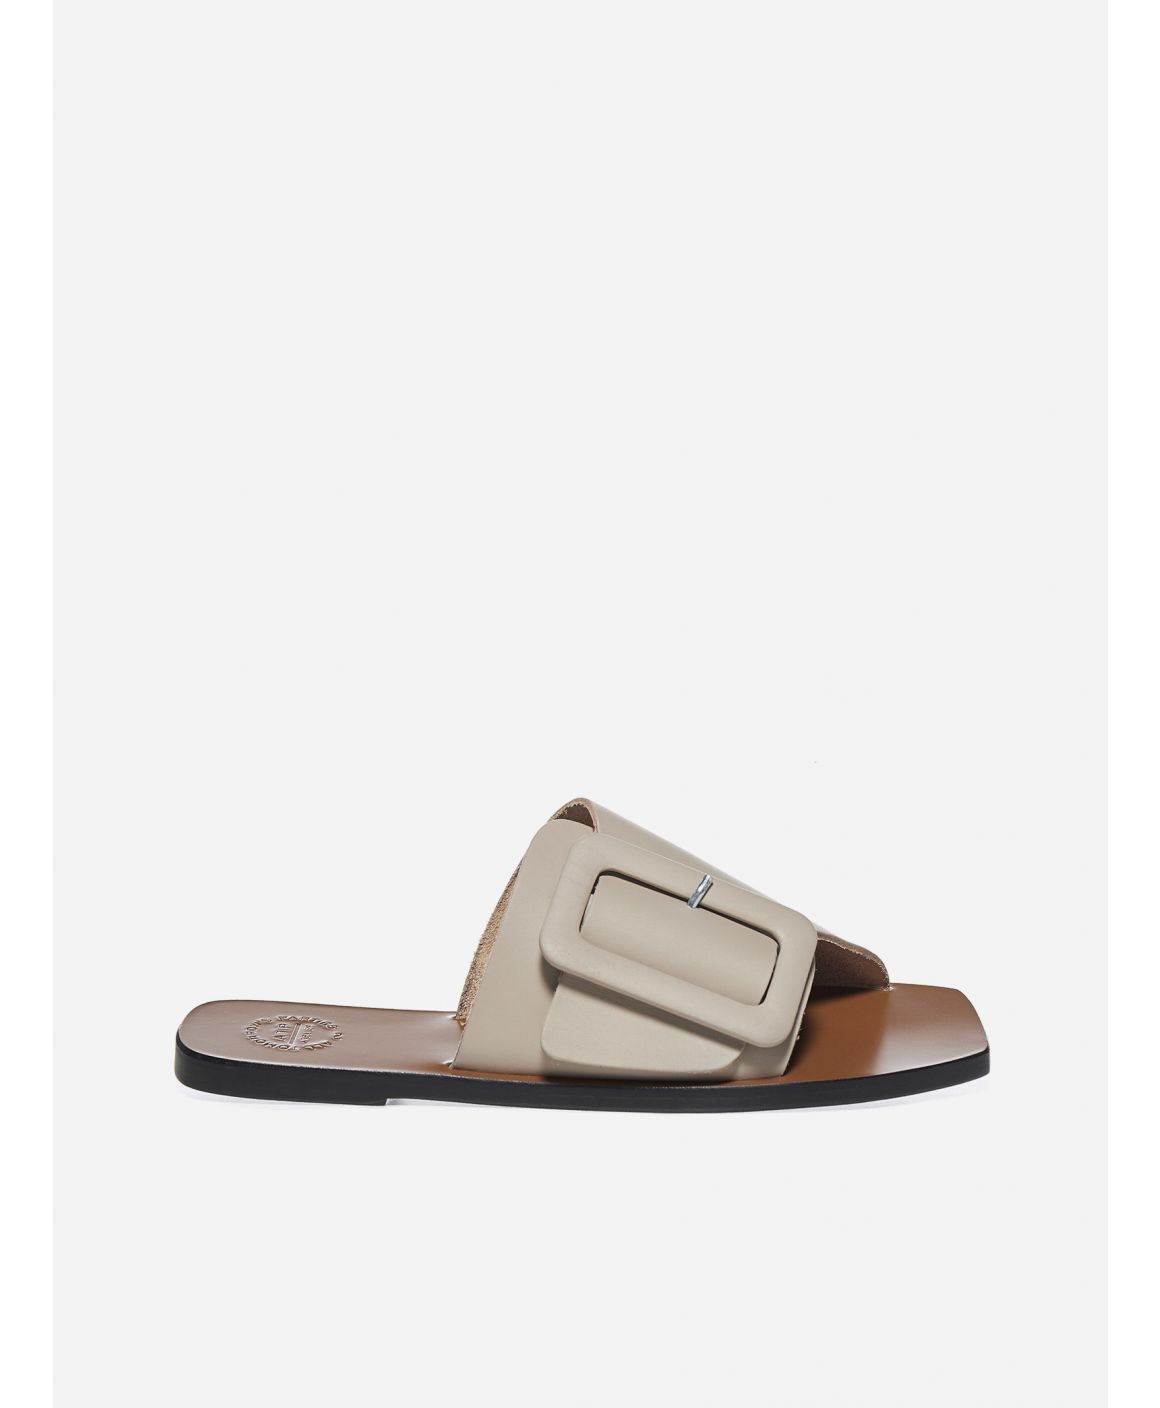 Ceci leather flat sandals